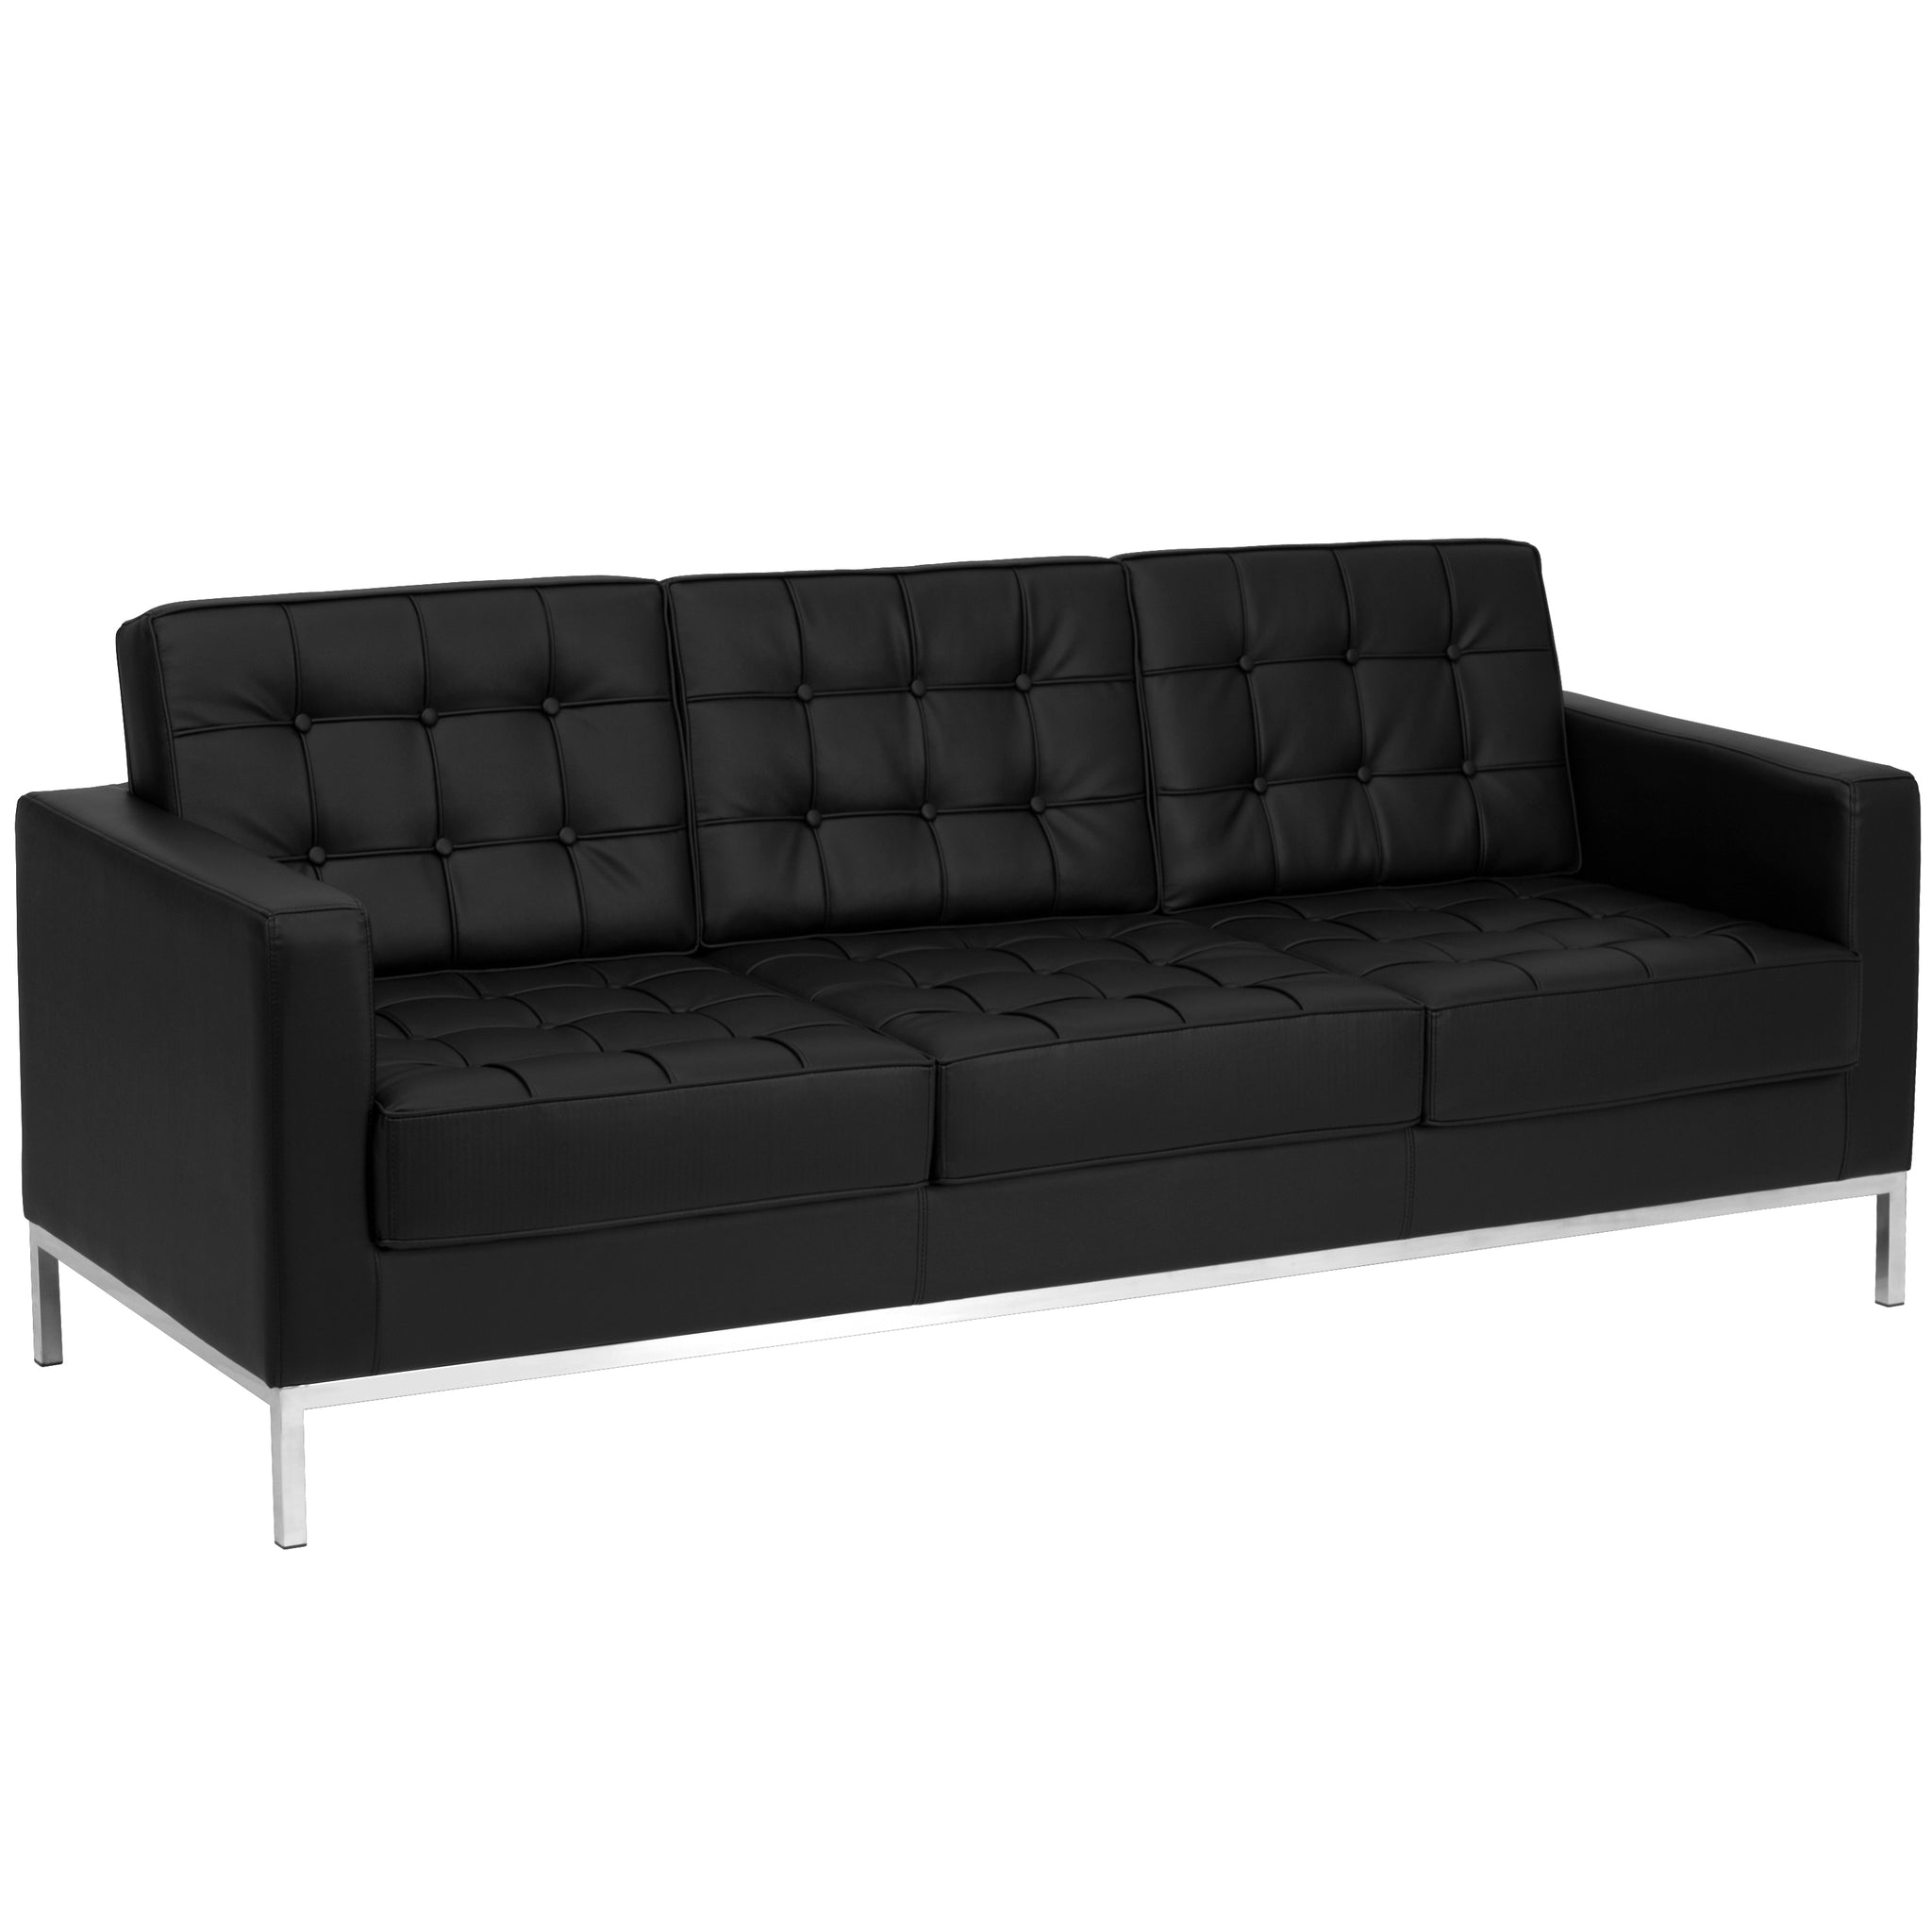 Incredible Hercules Lacey Series Contemporary Leather Sofa With Stainless Steel Frame Black Gmtry Best Dining Table And Chair Ideas Images Gmtryco